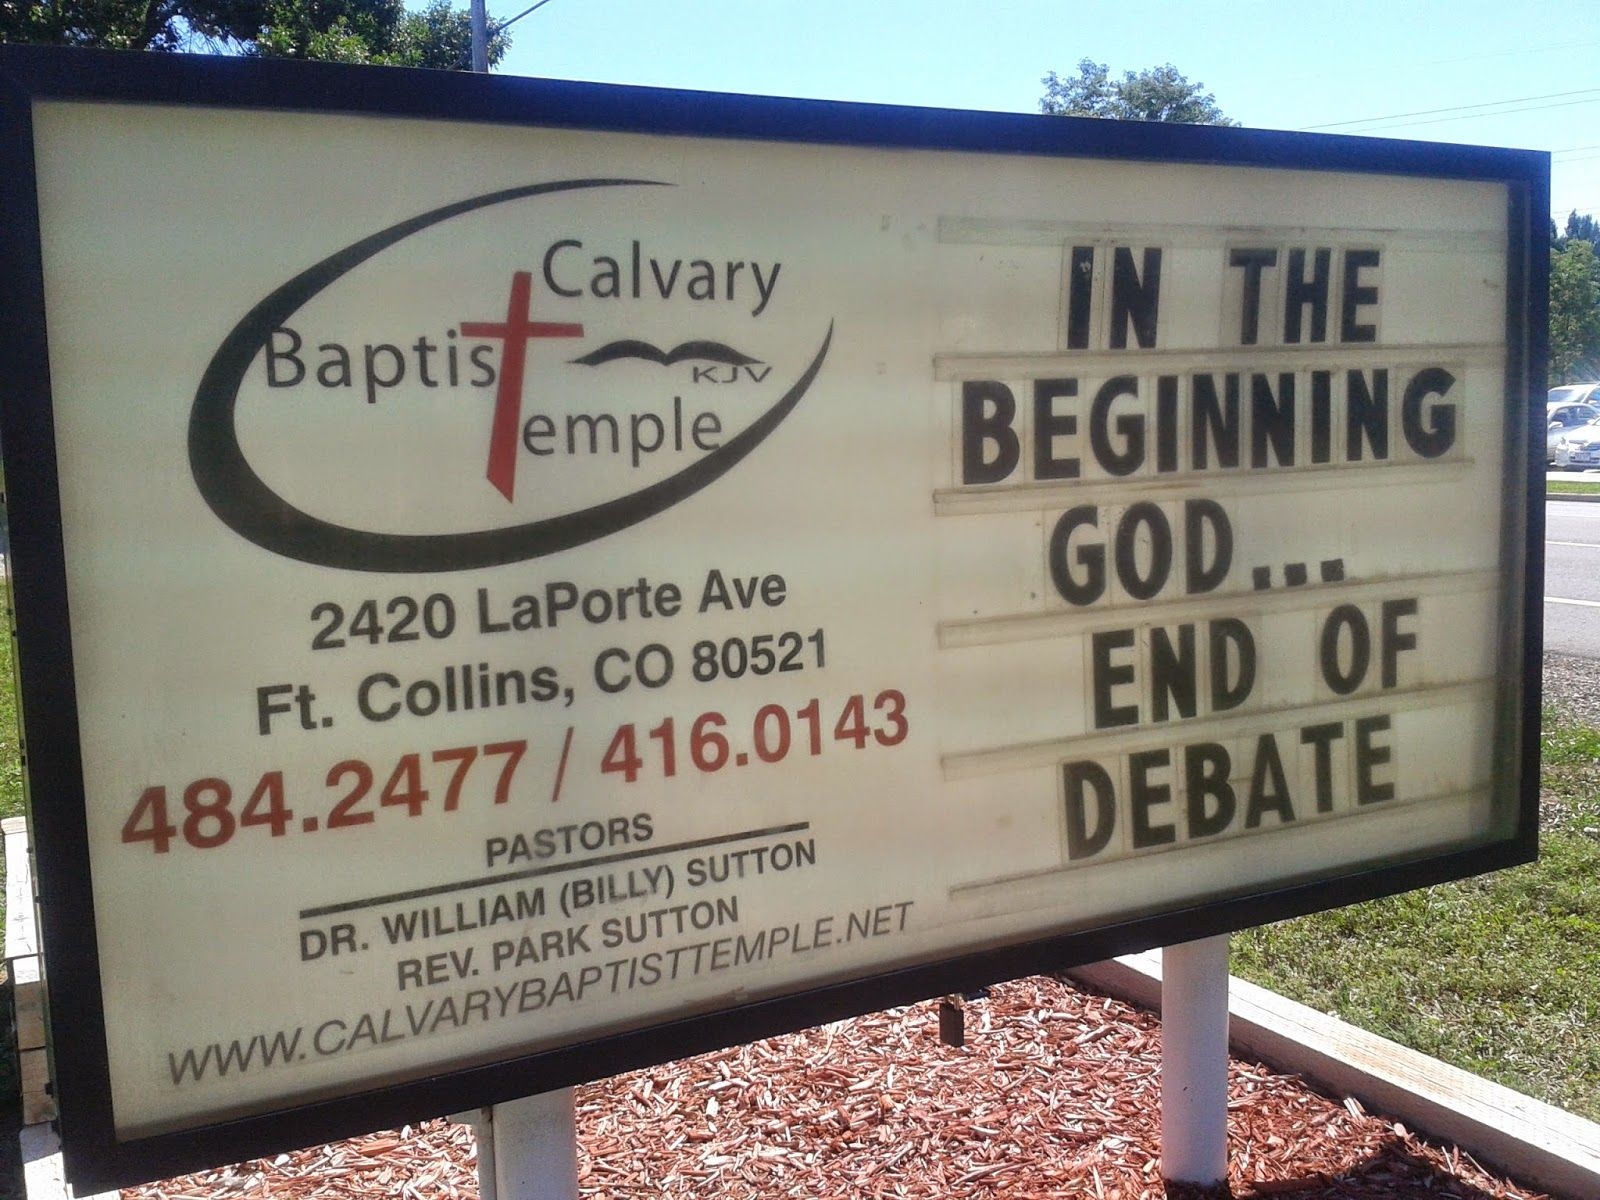 Church Sign Quotes Endearing In The Beginning Goddebate Over  Church Sign Board Message